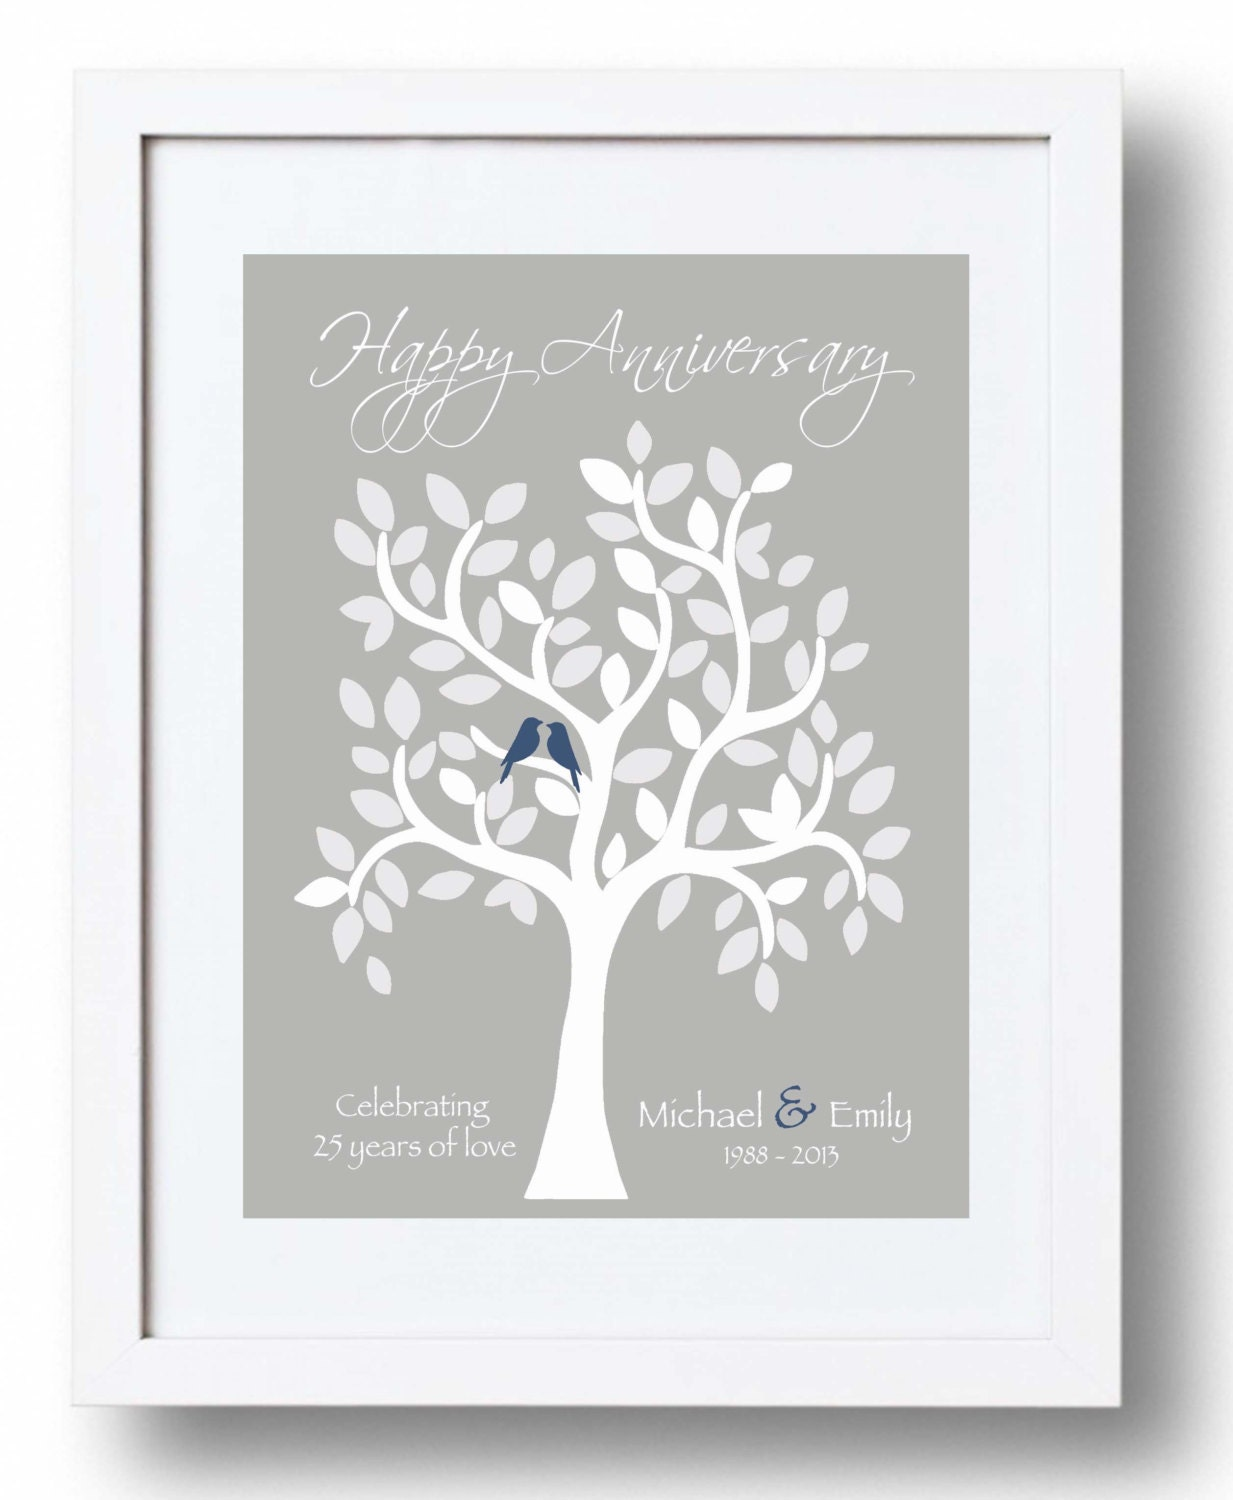 Silver Wedding Anniversary Gift Ideas Parents : 25th Anniversary Gift for Parents 25th Silver Anniversary